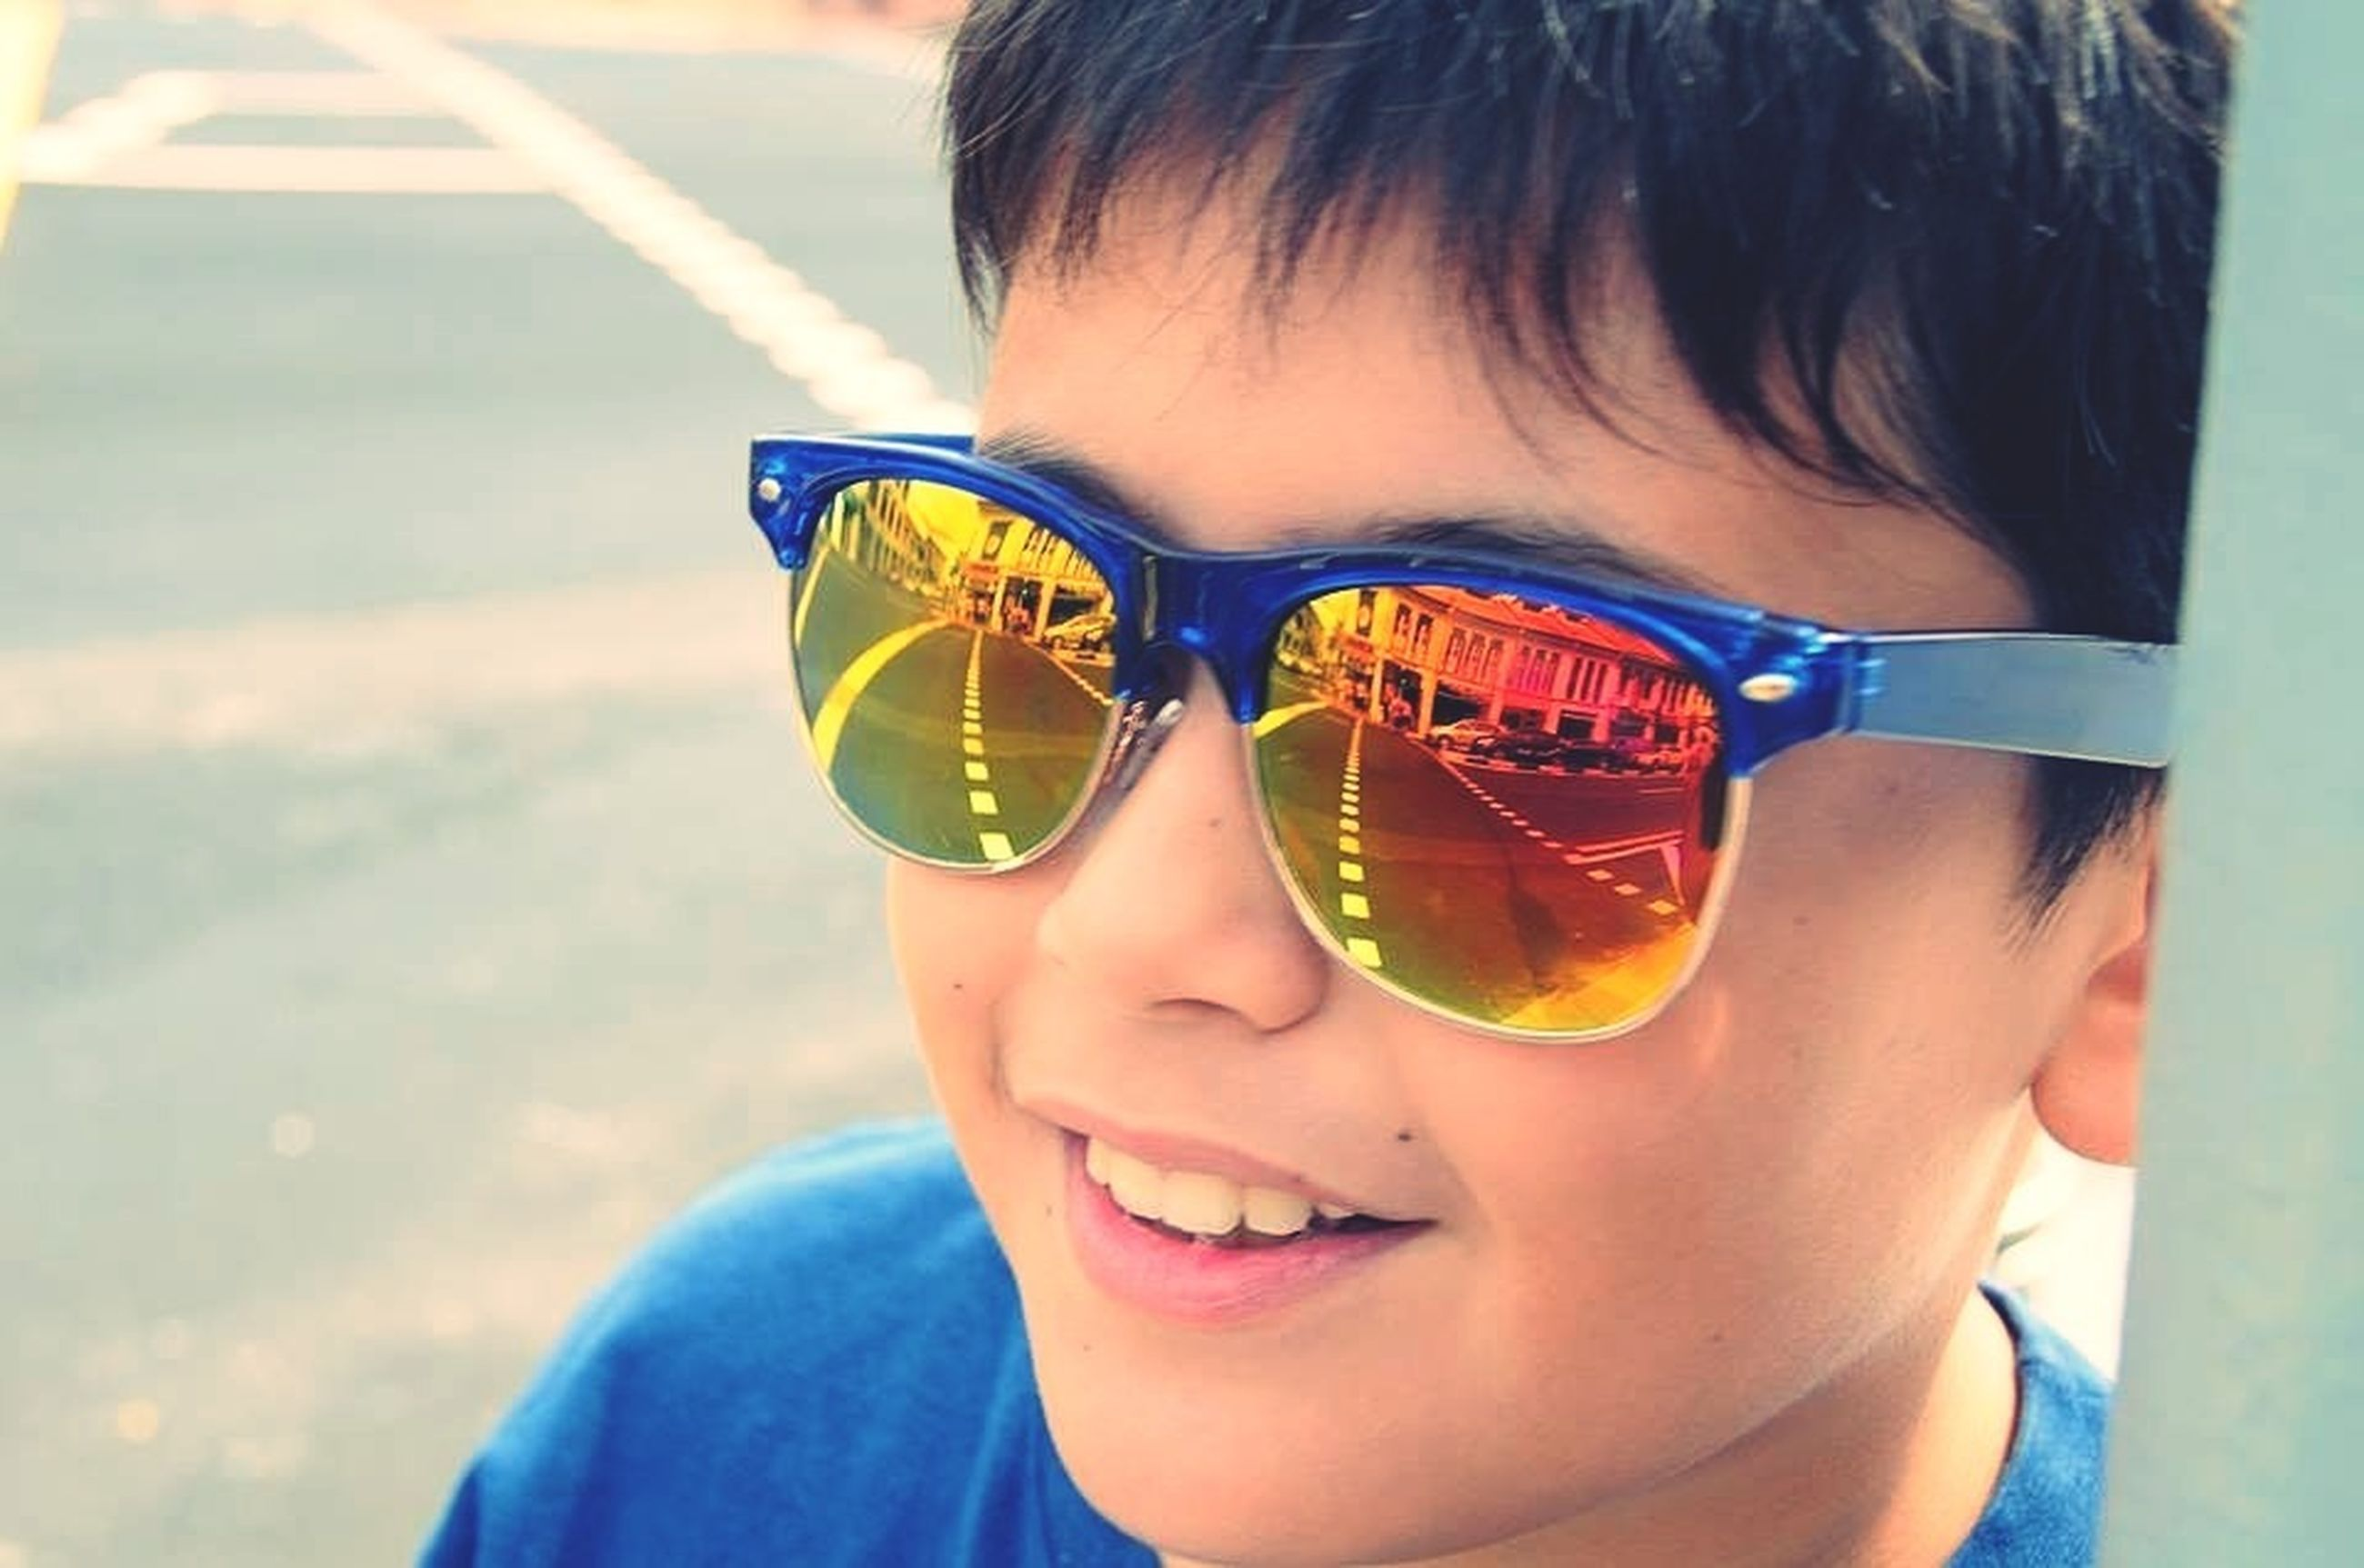 lifestyles, leisure activity, person, food and drink, headshot, refreshment, sunglasses, childhood, drink, holding, elementary age, focus on foreground, close-up, front view, boys, looking at camera, portrait, girls